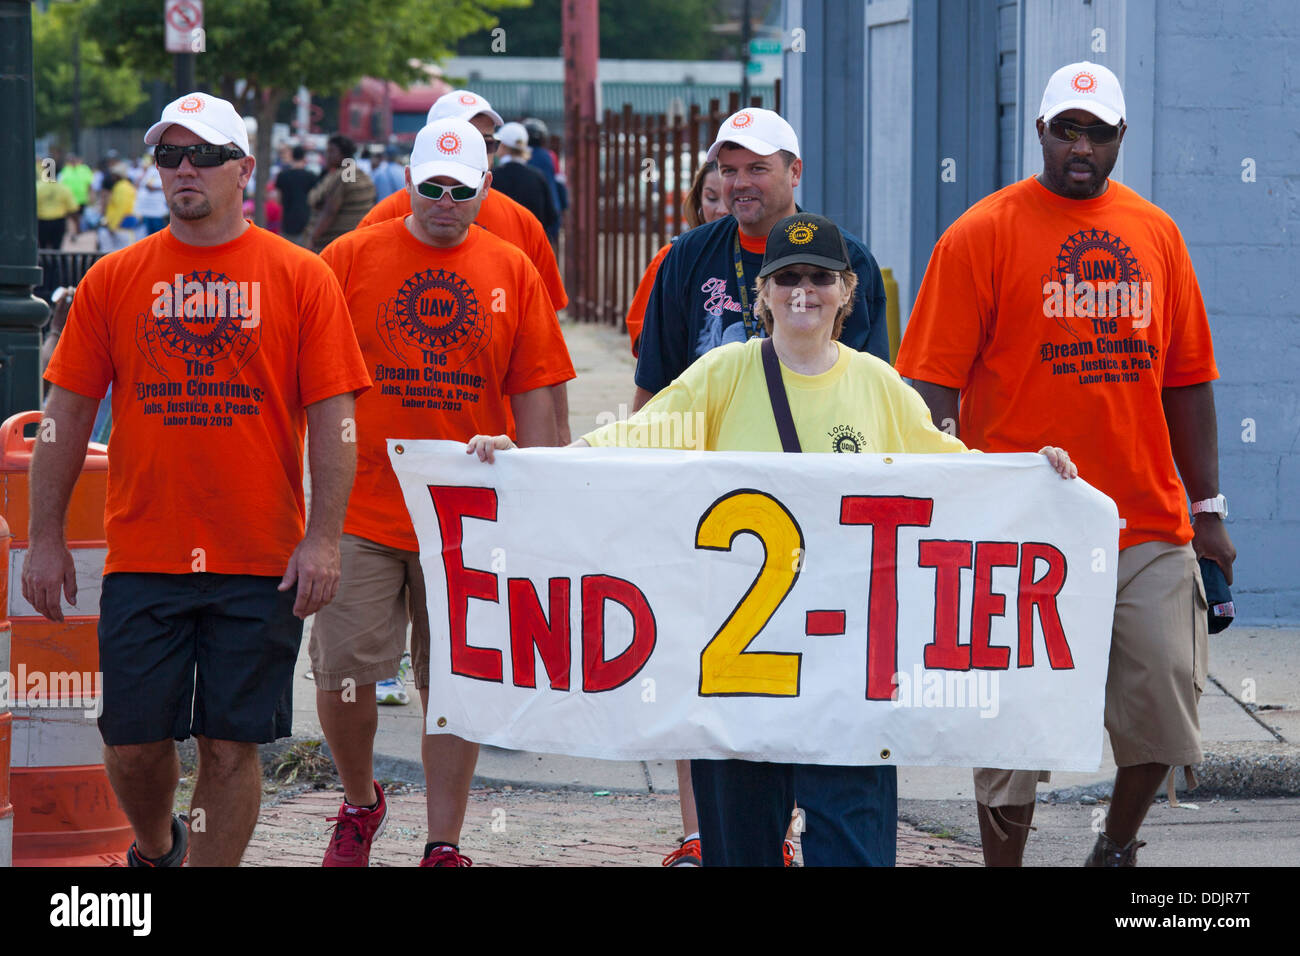 Members of United Auto Workers Local 600 at the Labor Day parade, expressing opposition to two-tier wage scales. - Stock Image